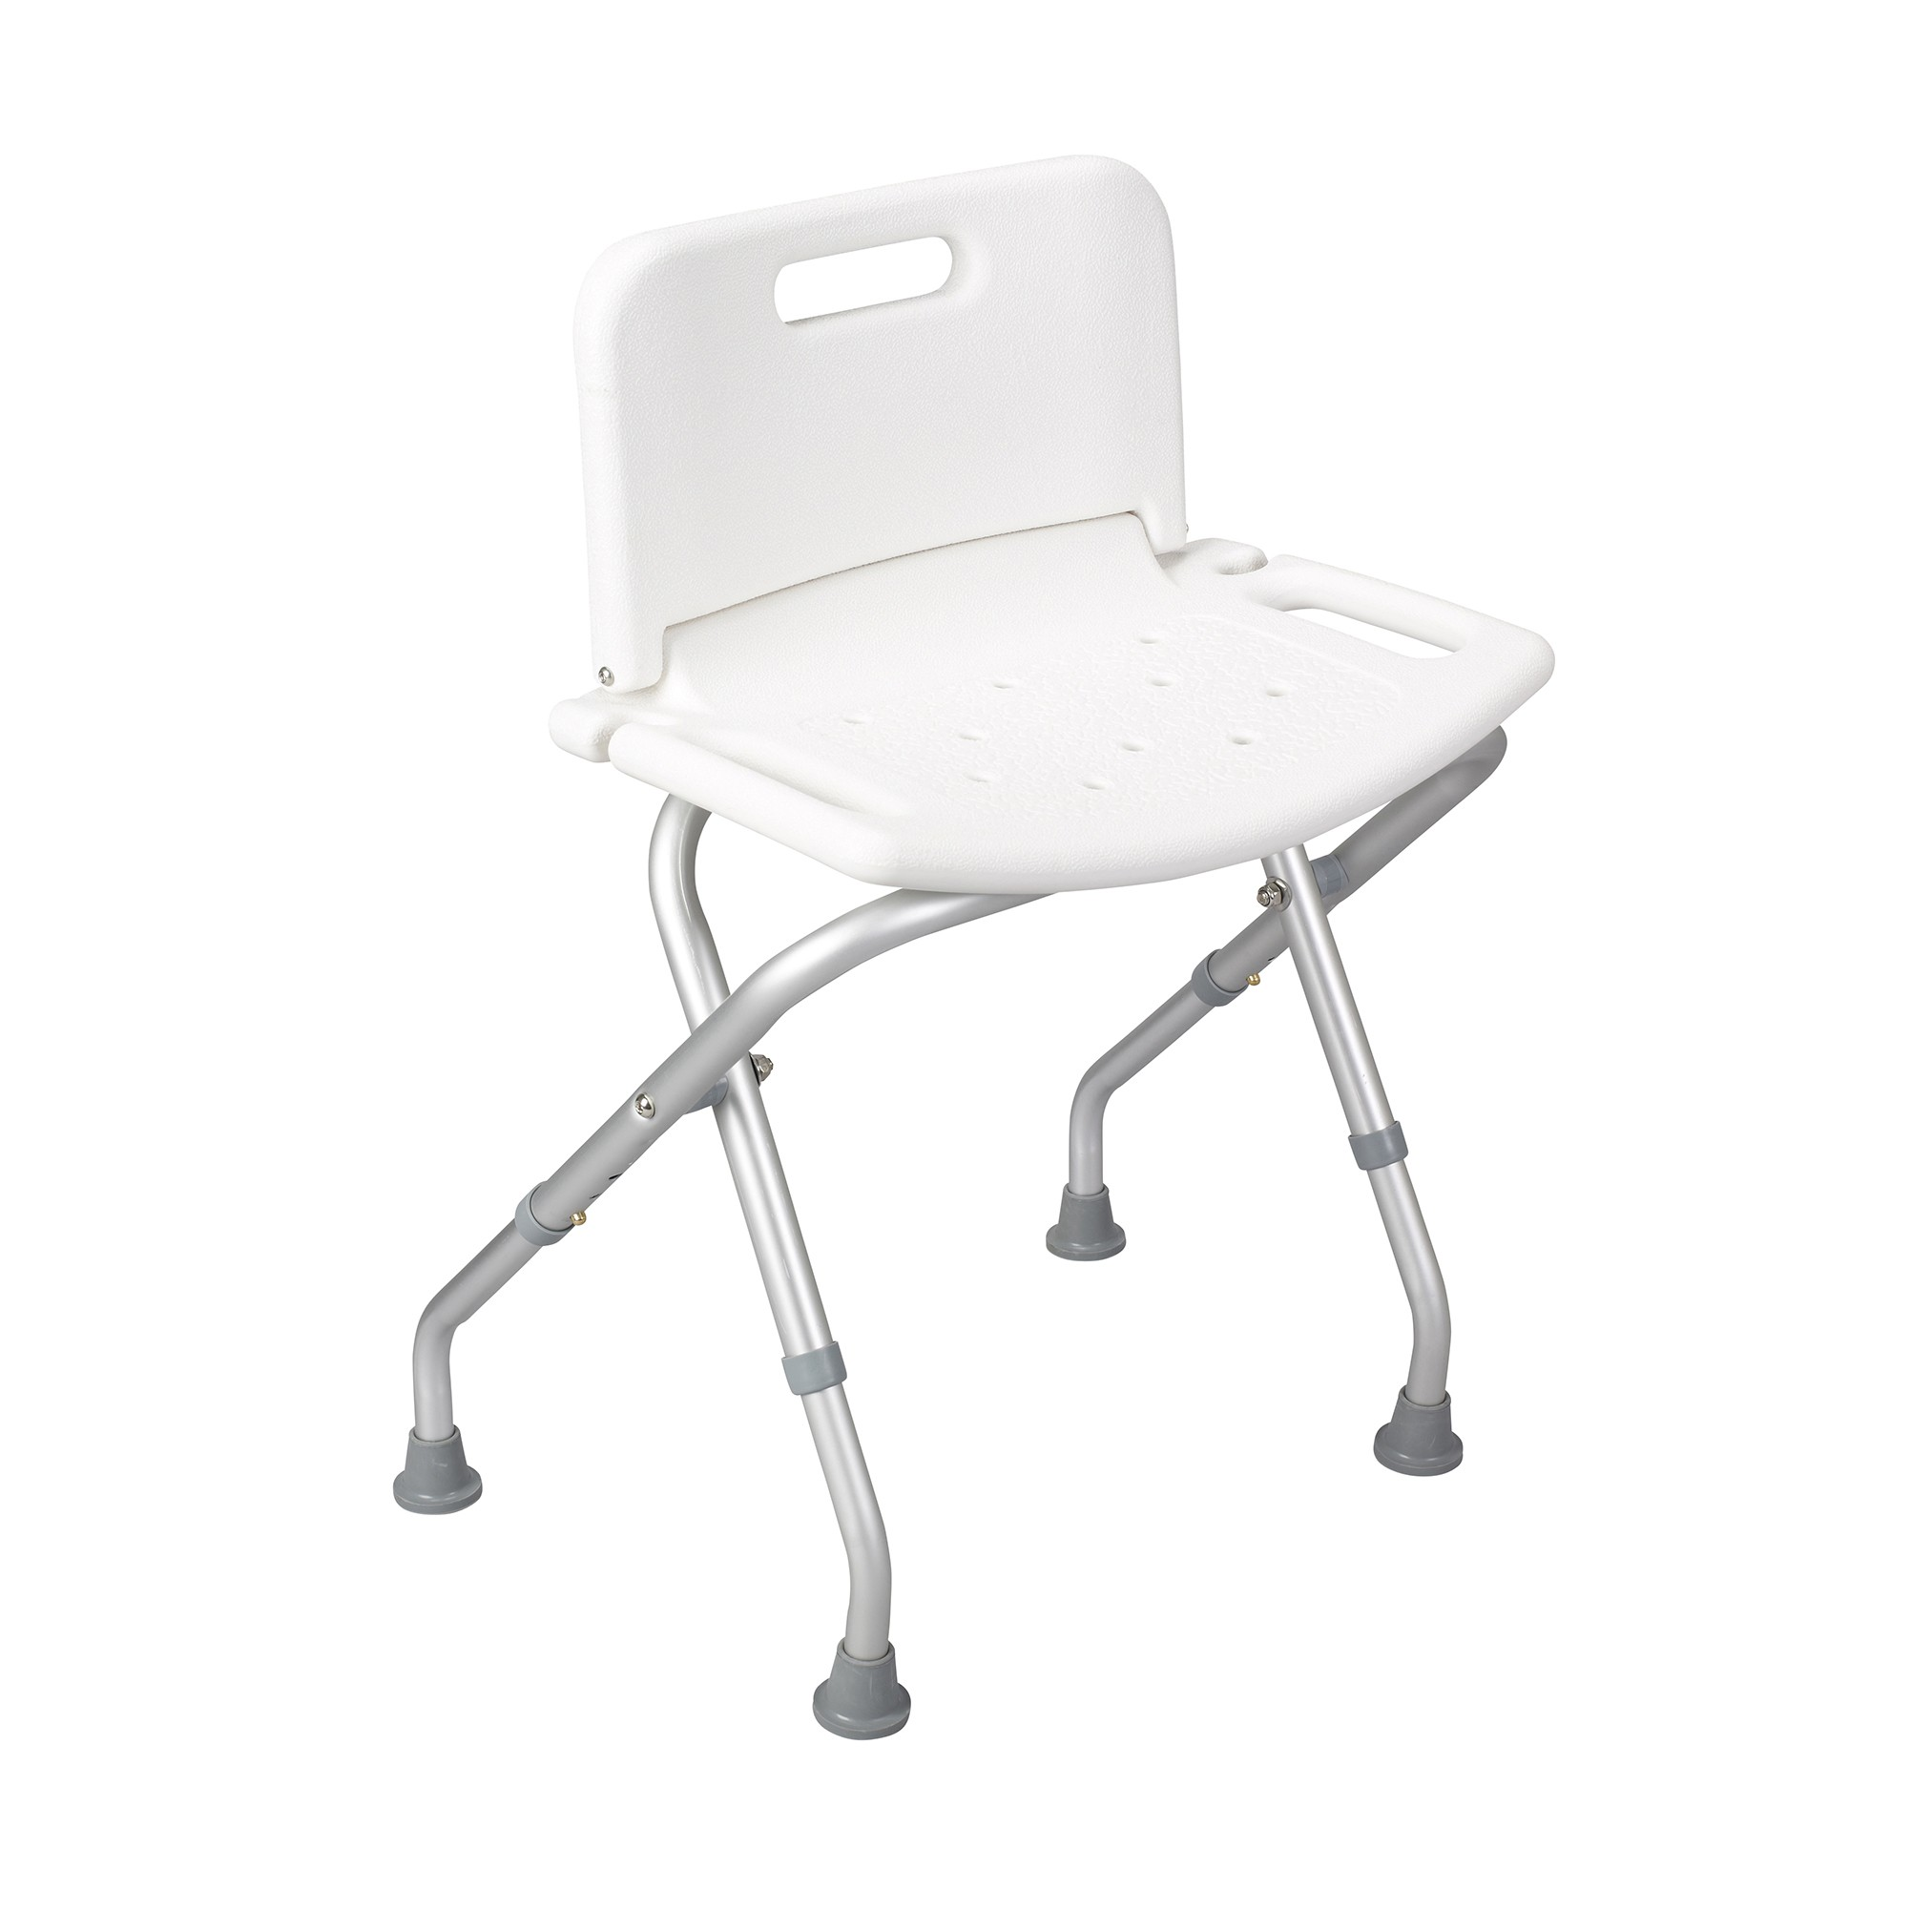 drive medical bathroom safety shower tub bench chair with back gray ashley and a half recliner folding bath